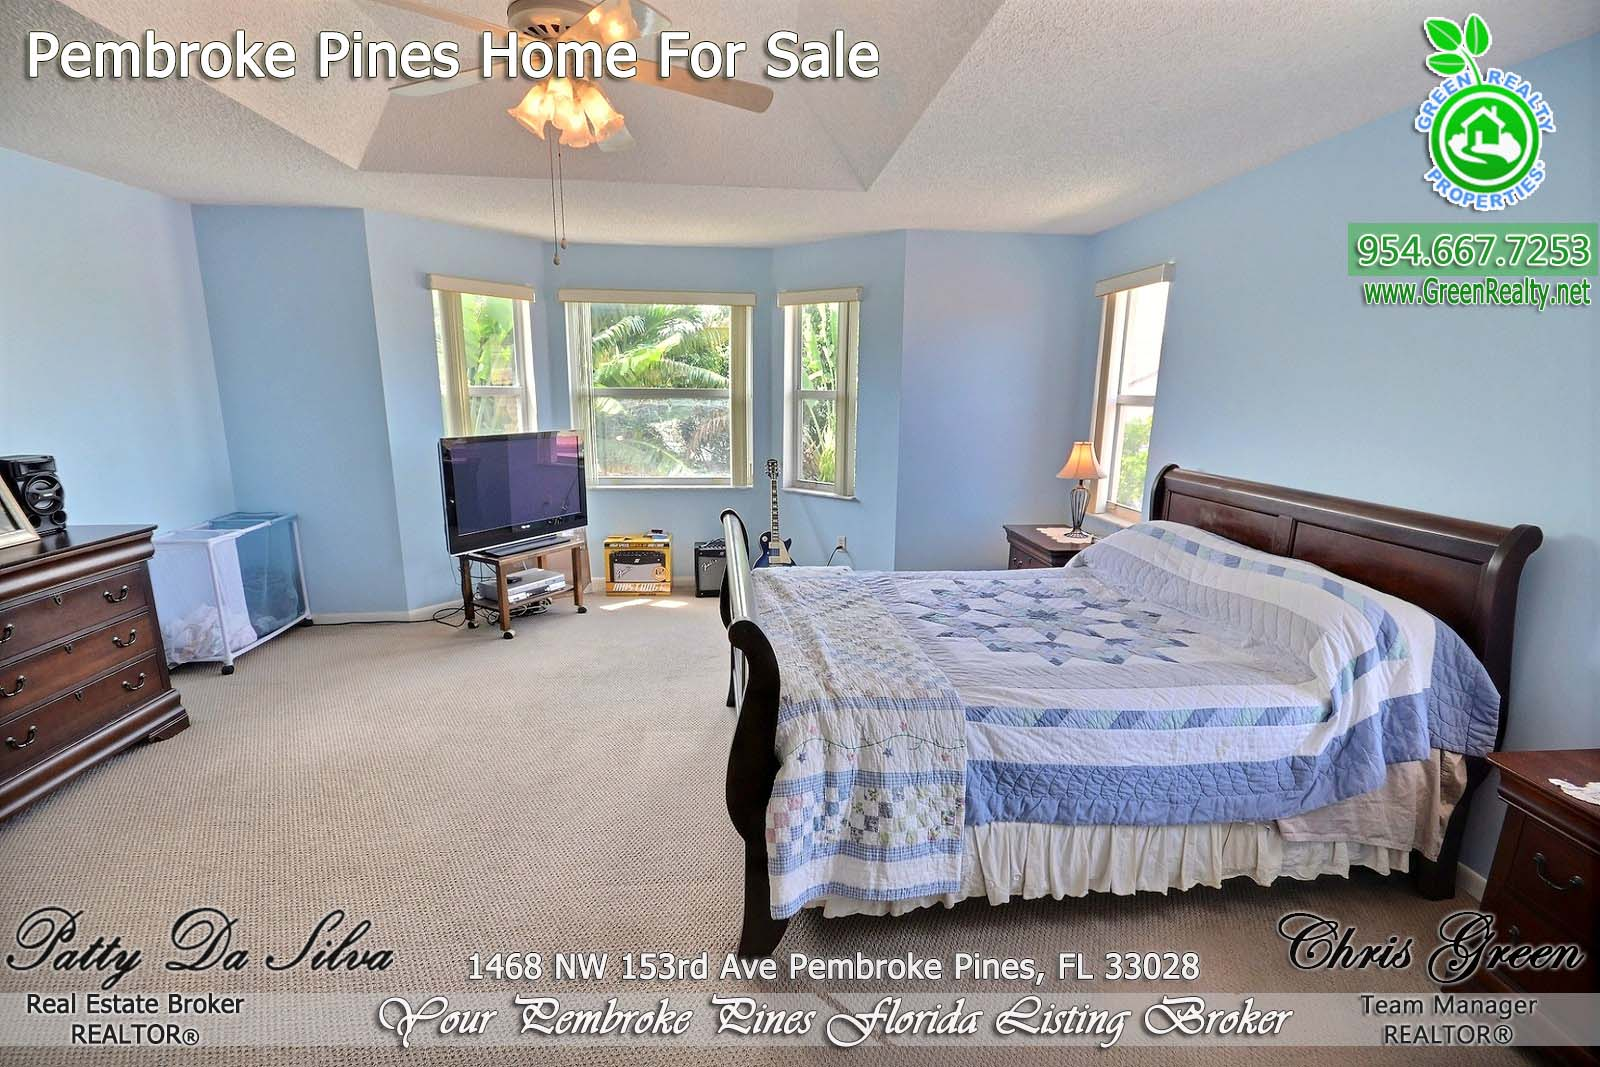 17 Patty Da SIlva SELLS Pembroke Pines Homes (3)